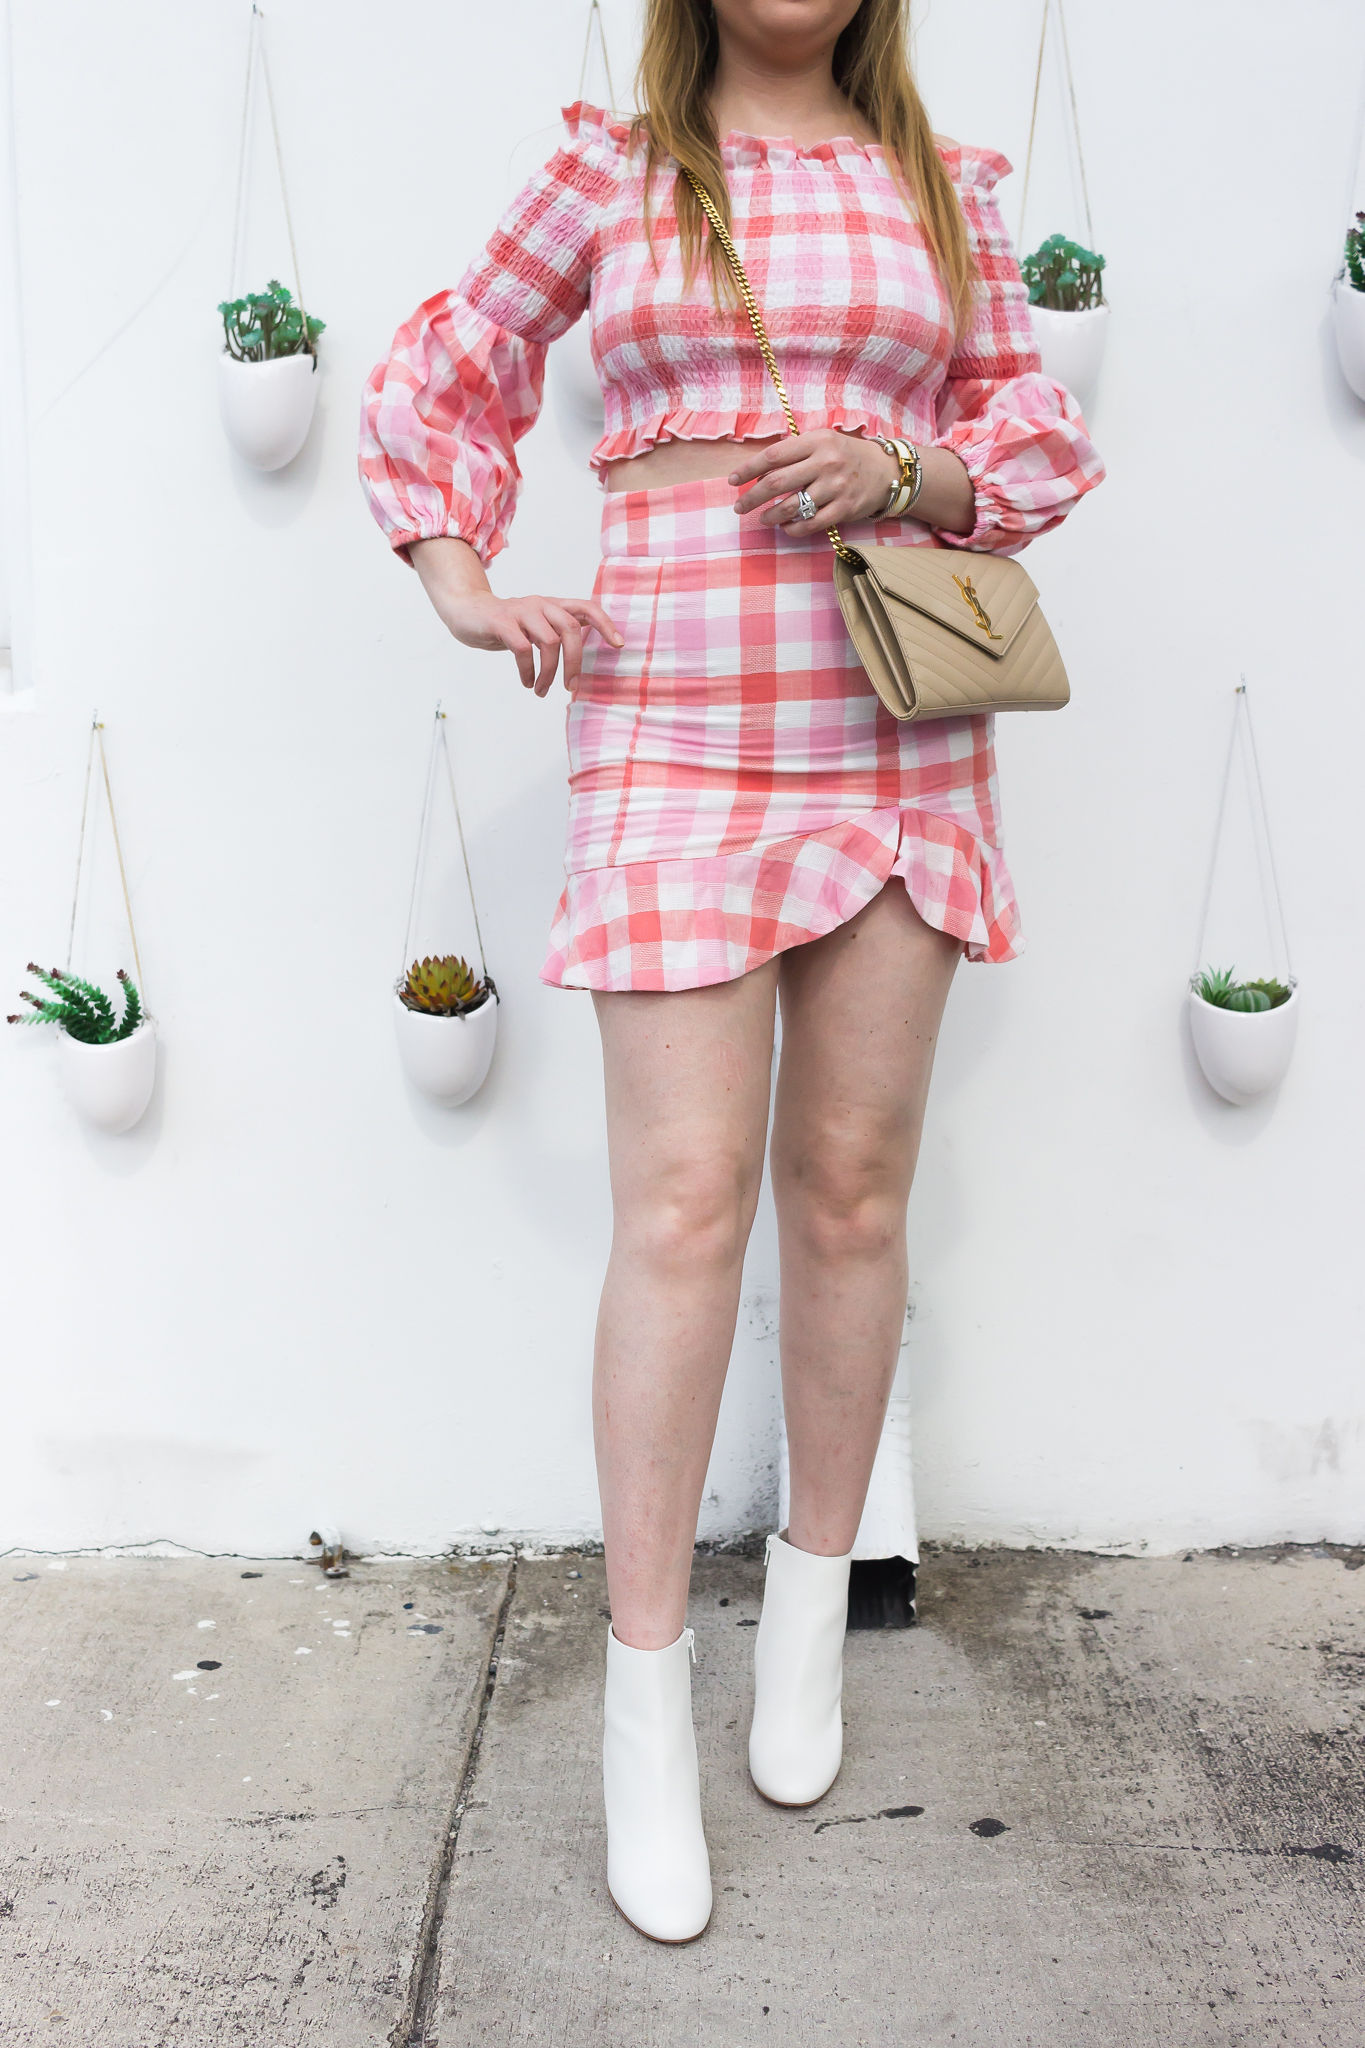 7 Steps To Dress Like A Millionaire Without Spending Much Money, suboo, SUBOO Sundown Shirred Cropped Top & Mini Skirt, suboo matching set, pink matching set, pink matching crop top set, louboutin white boots, white boots, wynwood walls, miami wynwood walls, ysl wallet on chain, ysl nude wallet on chain